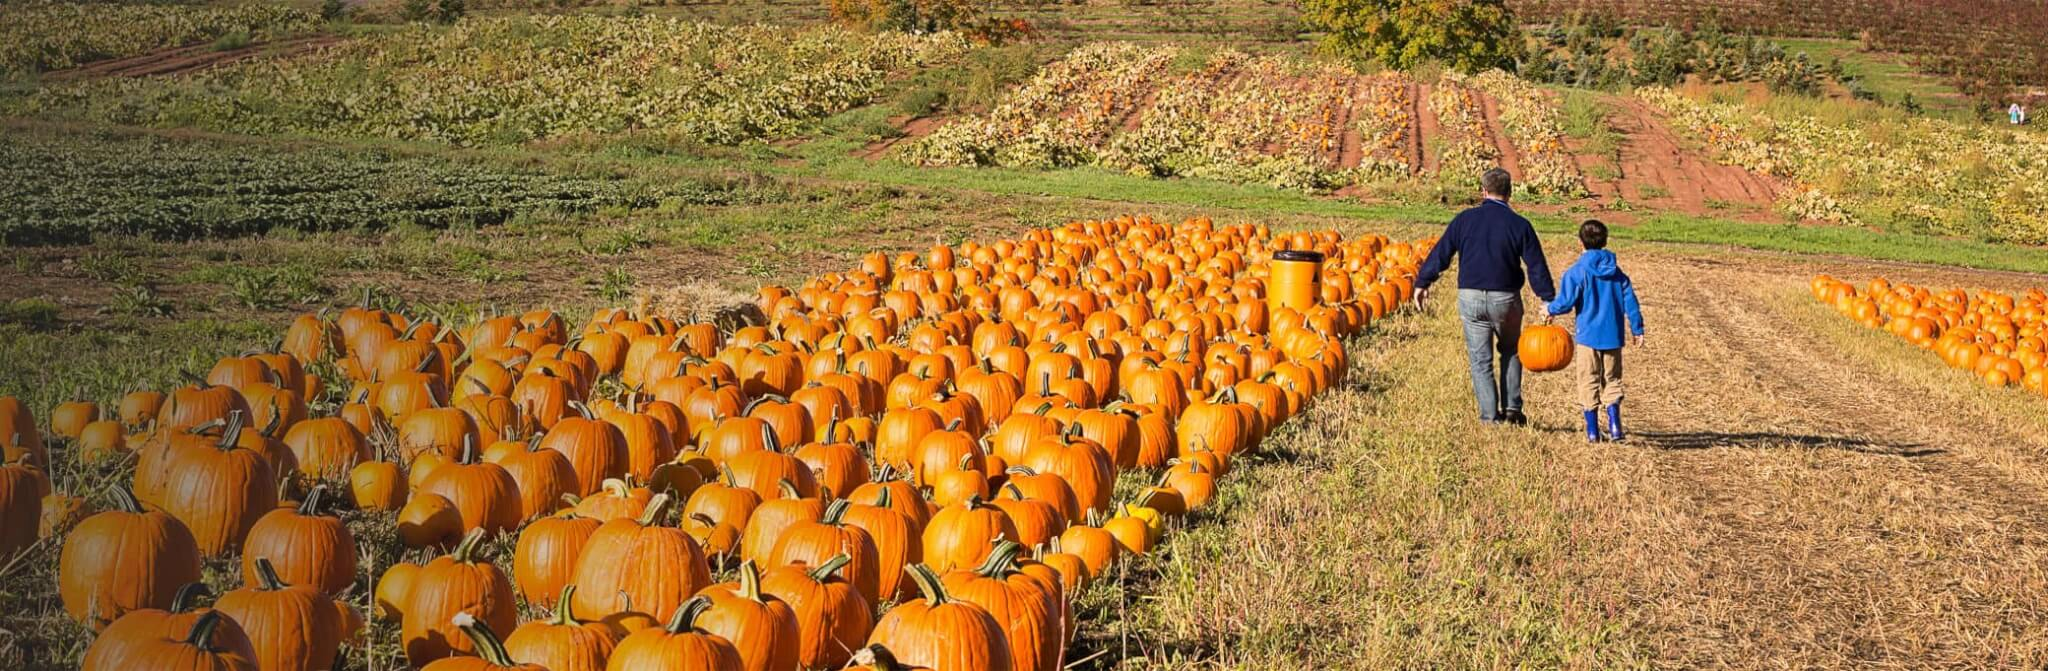 Pumpkins lined up on a field ready for picking